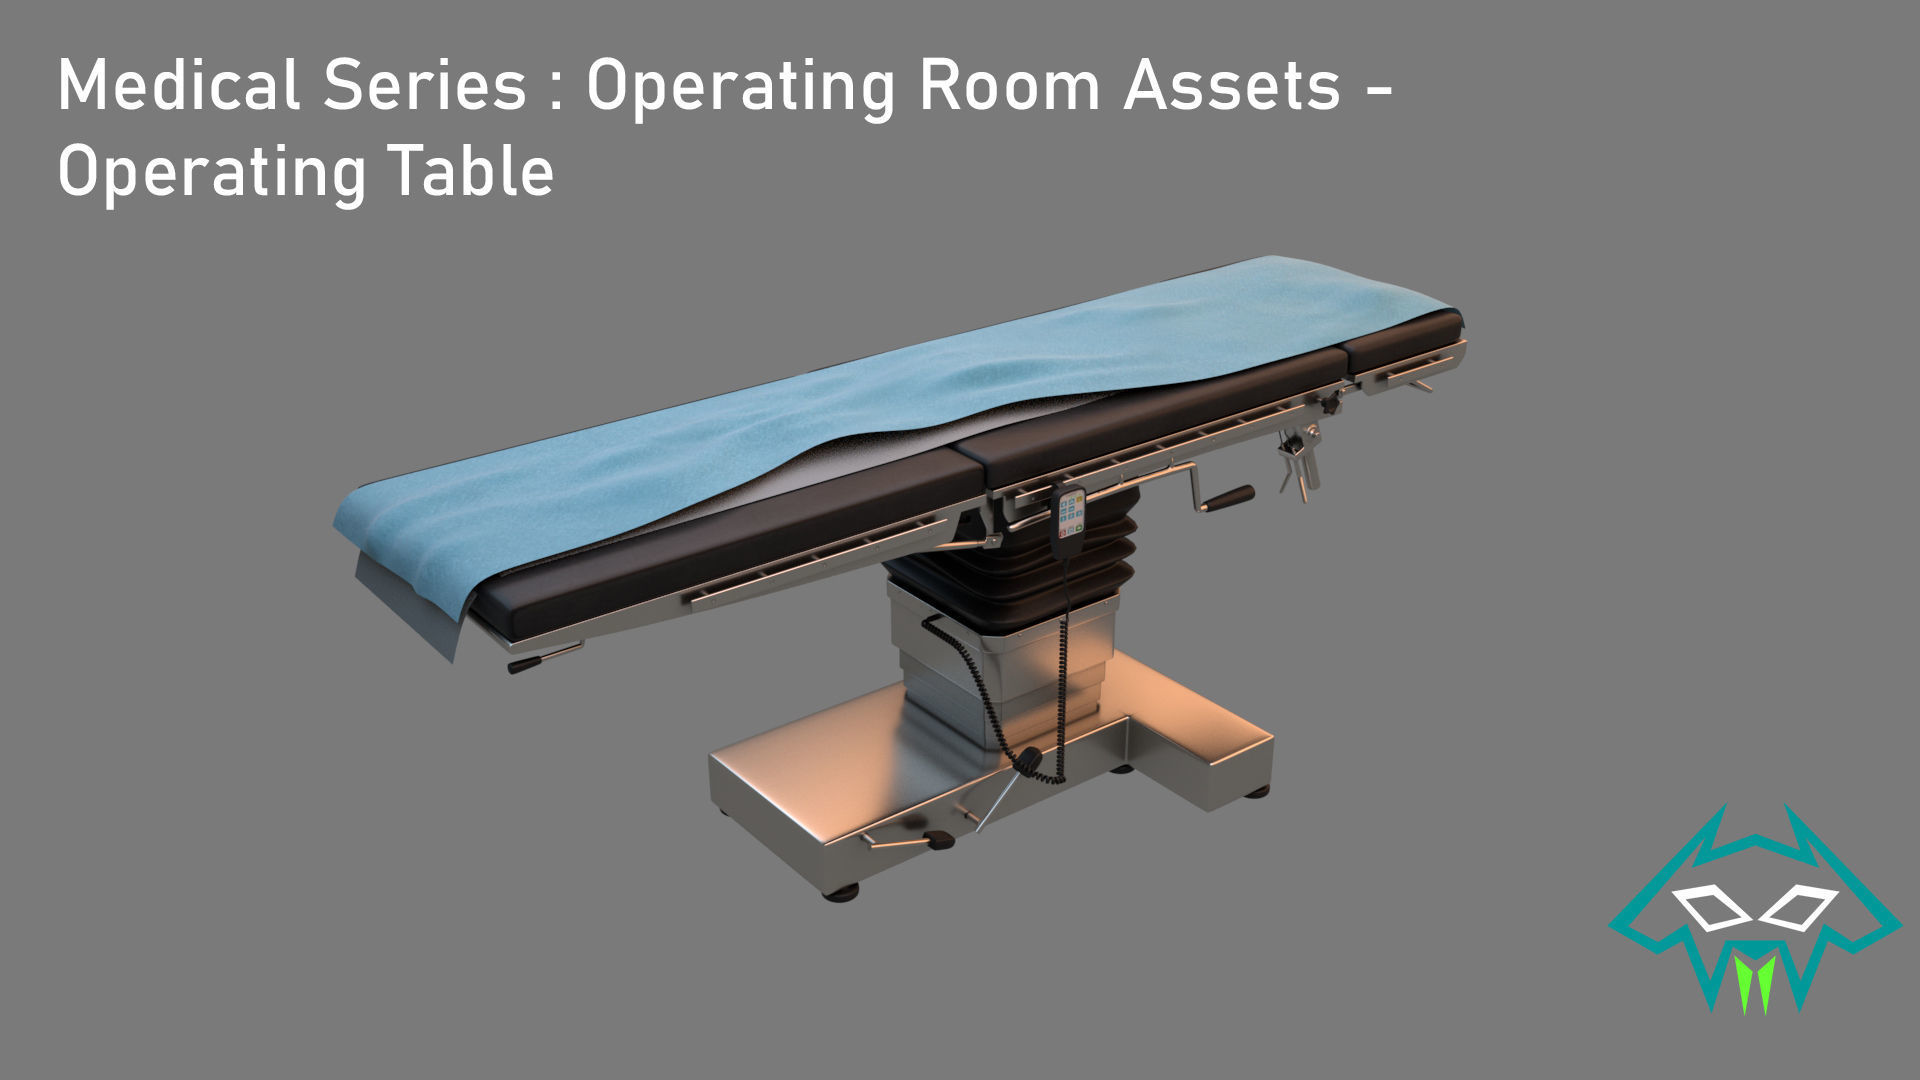 Medical Series - Operating Room - Operating Table